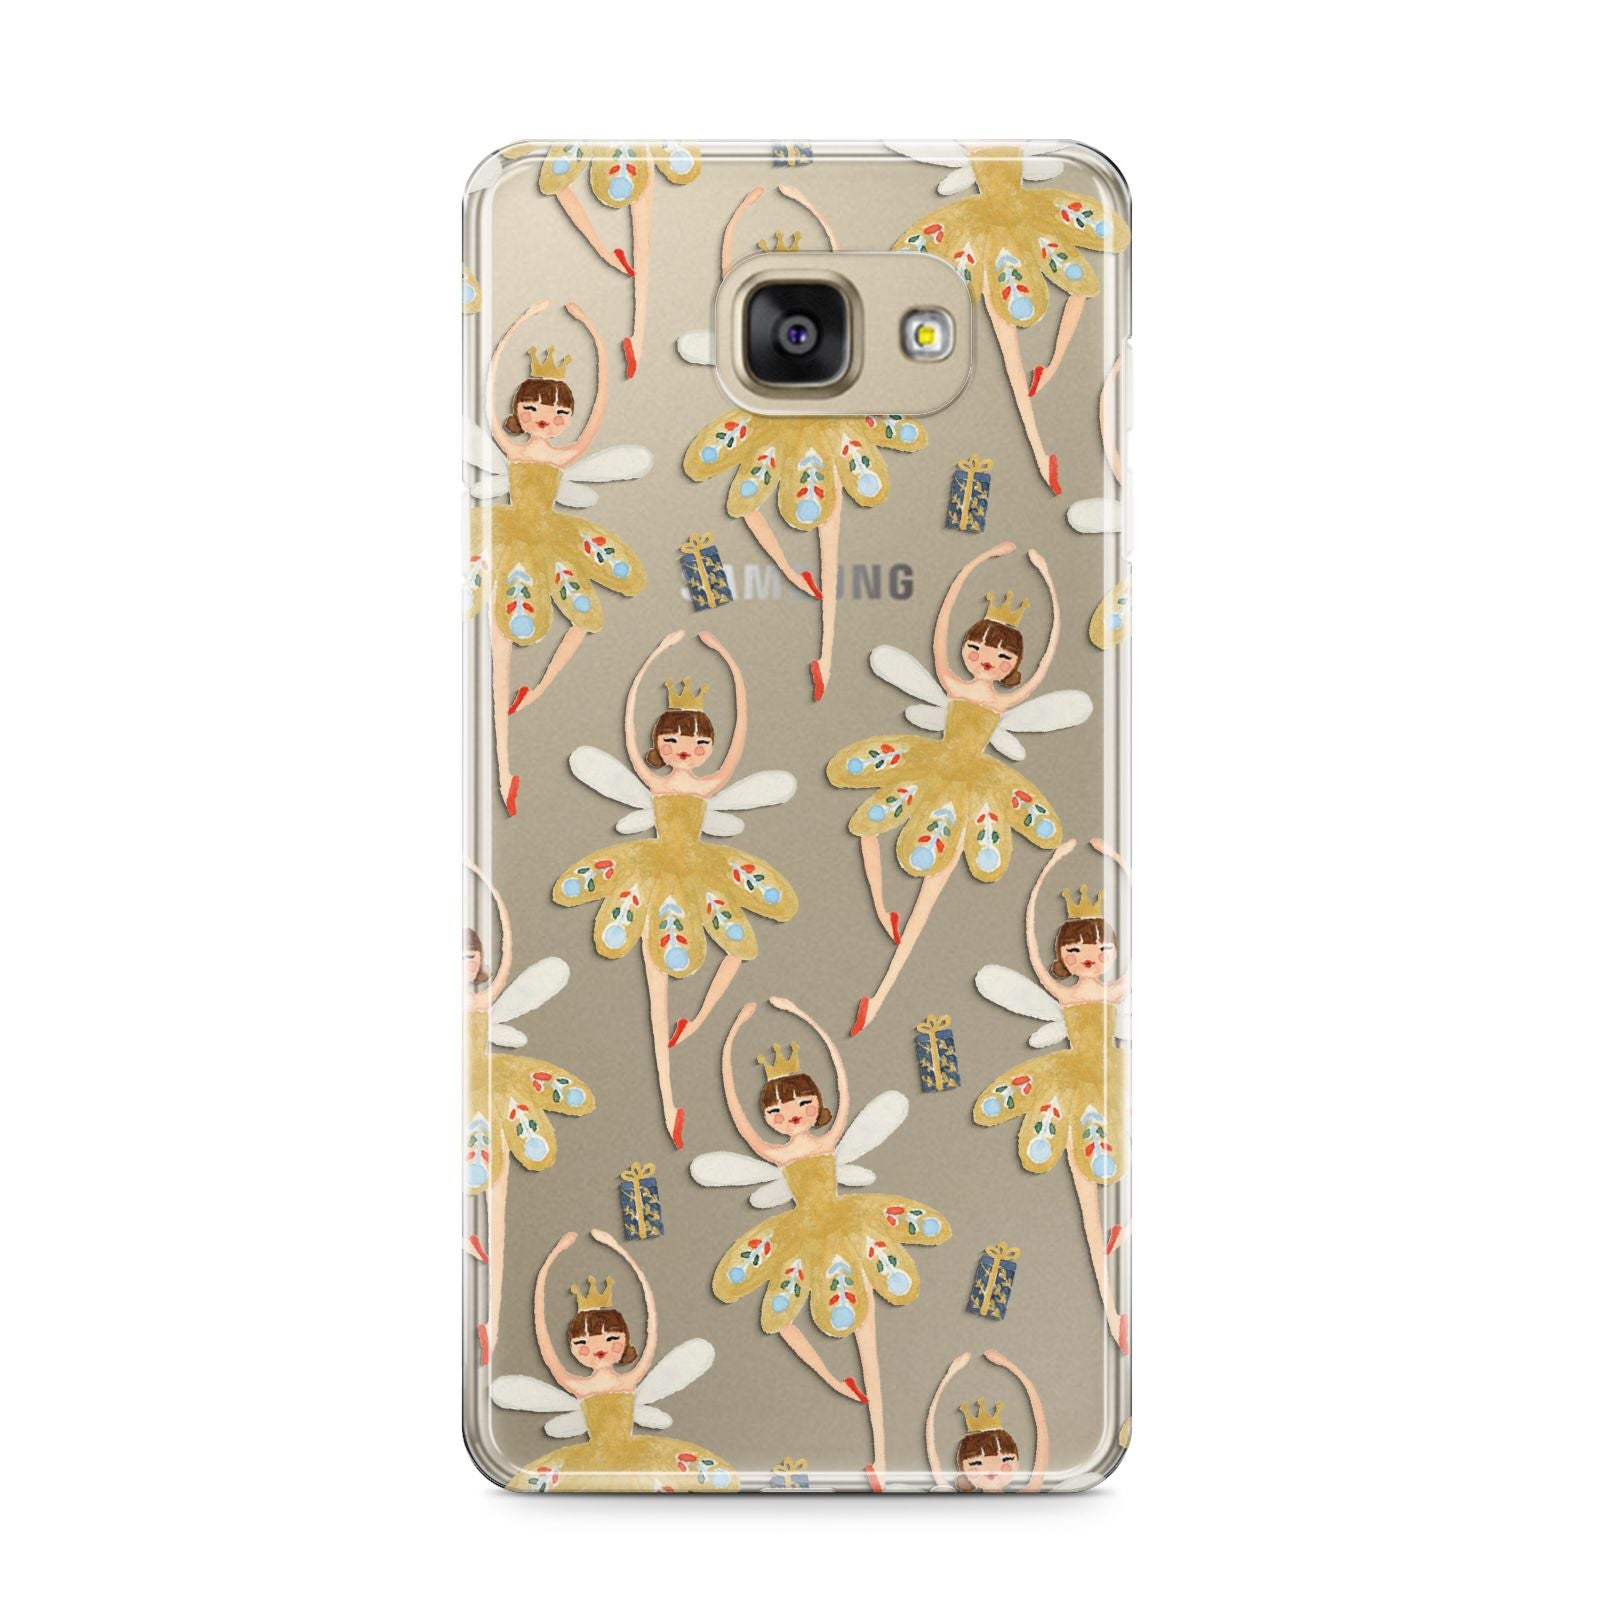 Dancing ballerina princess Samsung Galaxy A9 2016 Case on gold phone